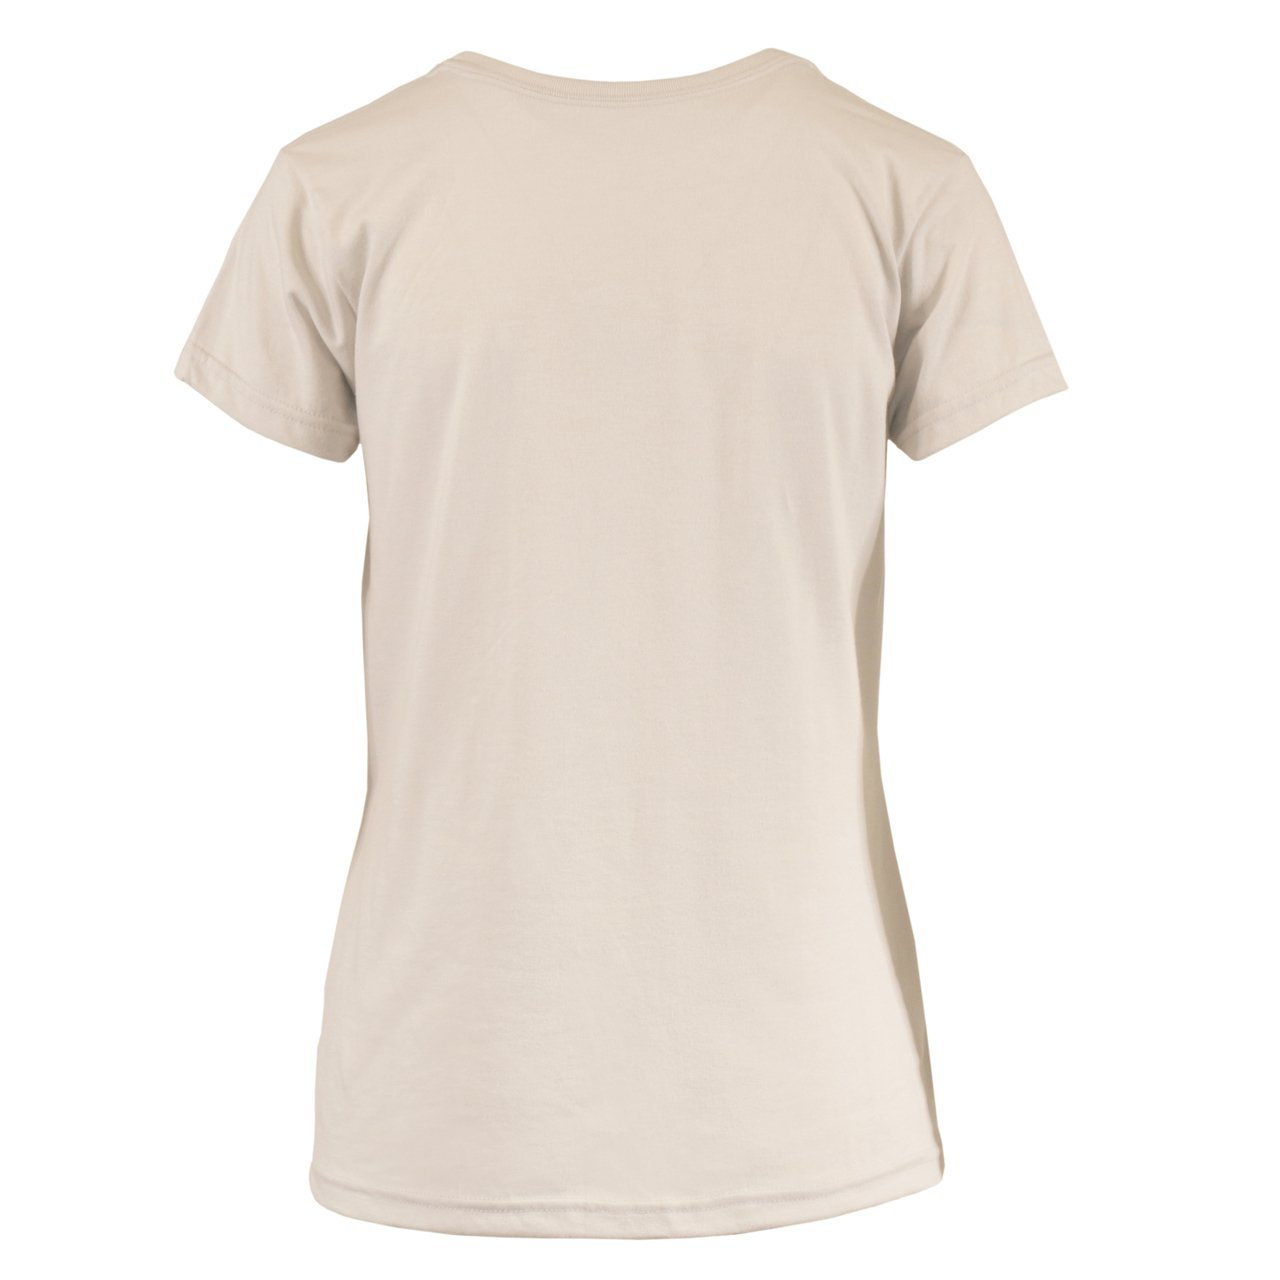 PC150SR Eco REPREVE® Recycled Polyester/Cotton Ladies T-Shirt - Silver